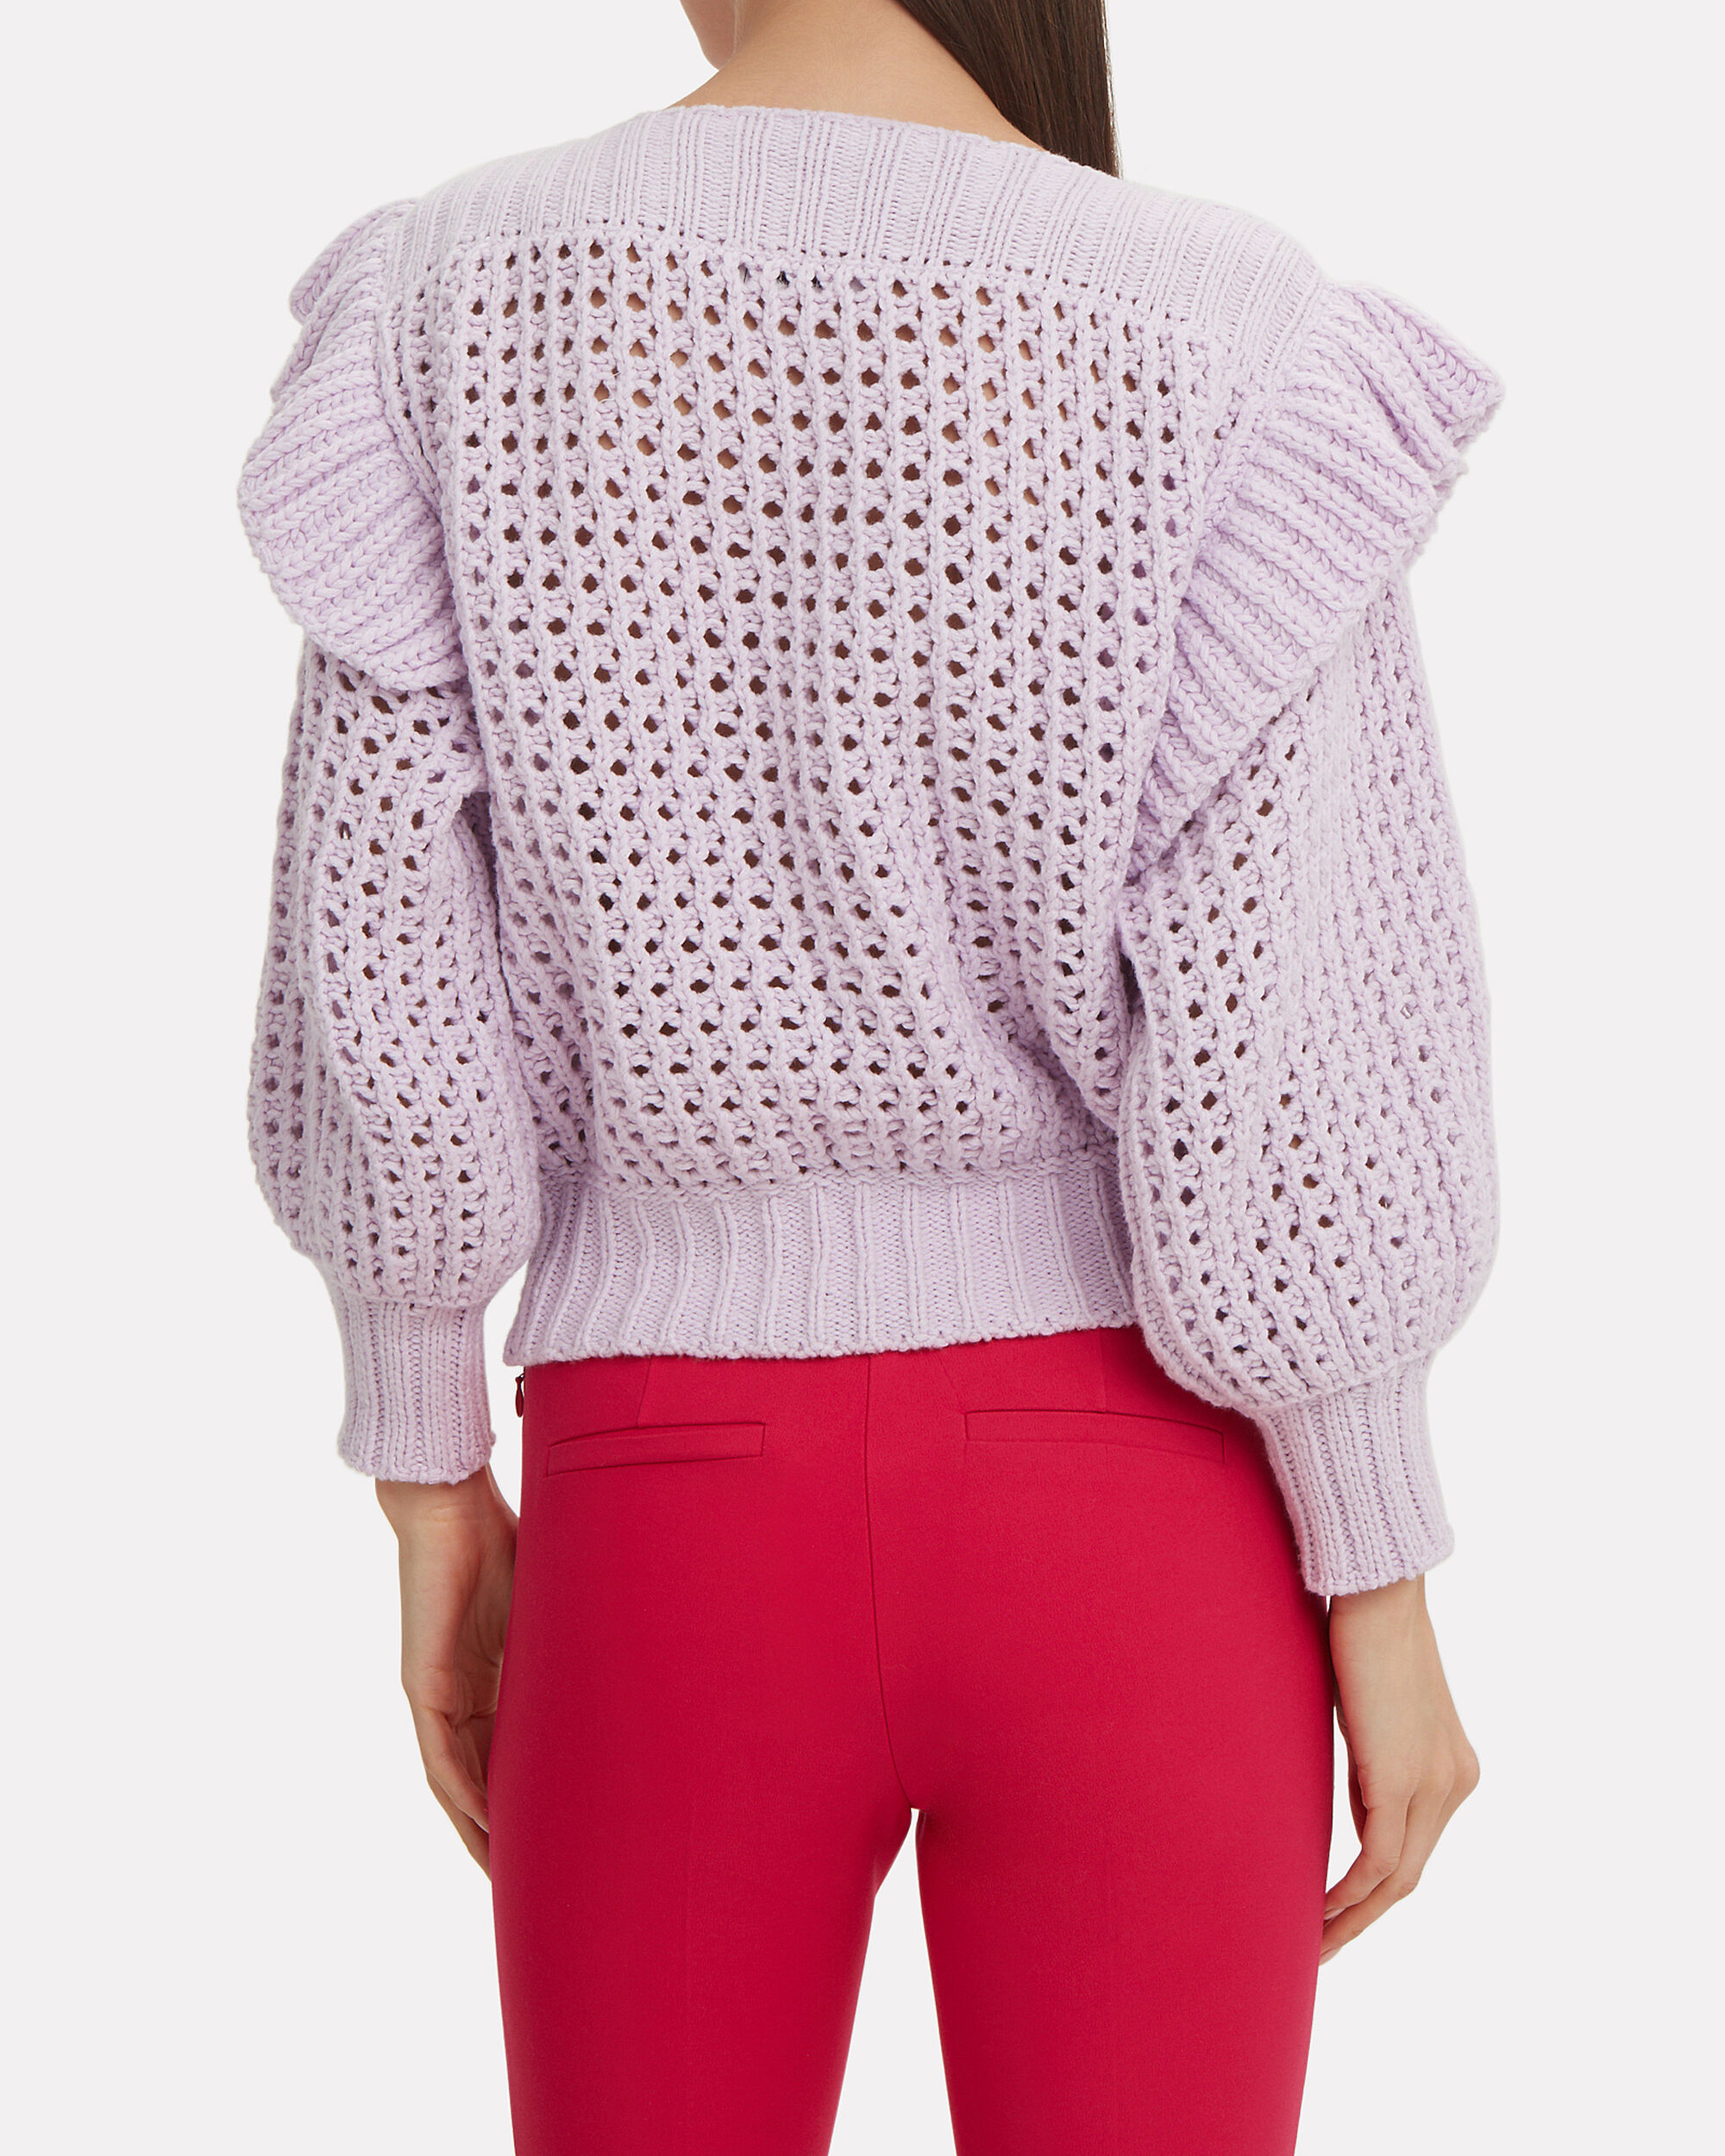 Ruffle Knit Sweater, LILAC, hi-res